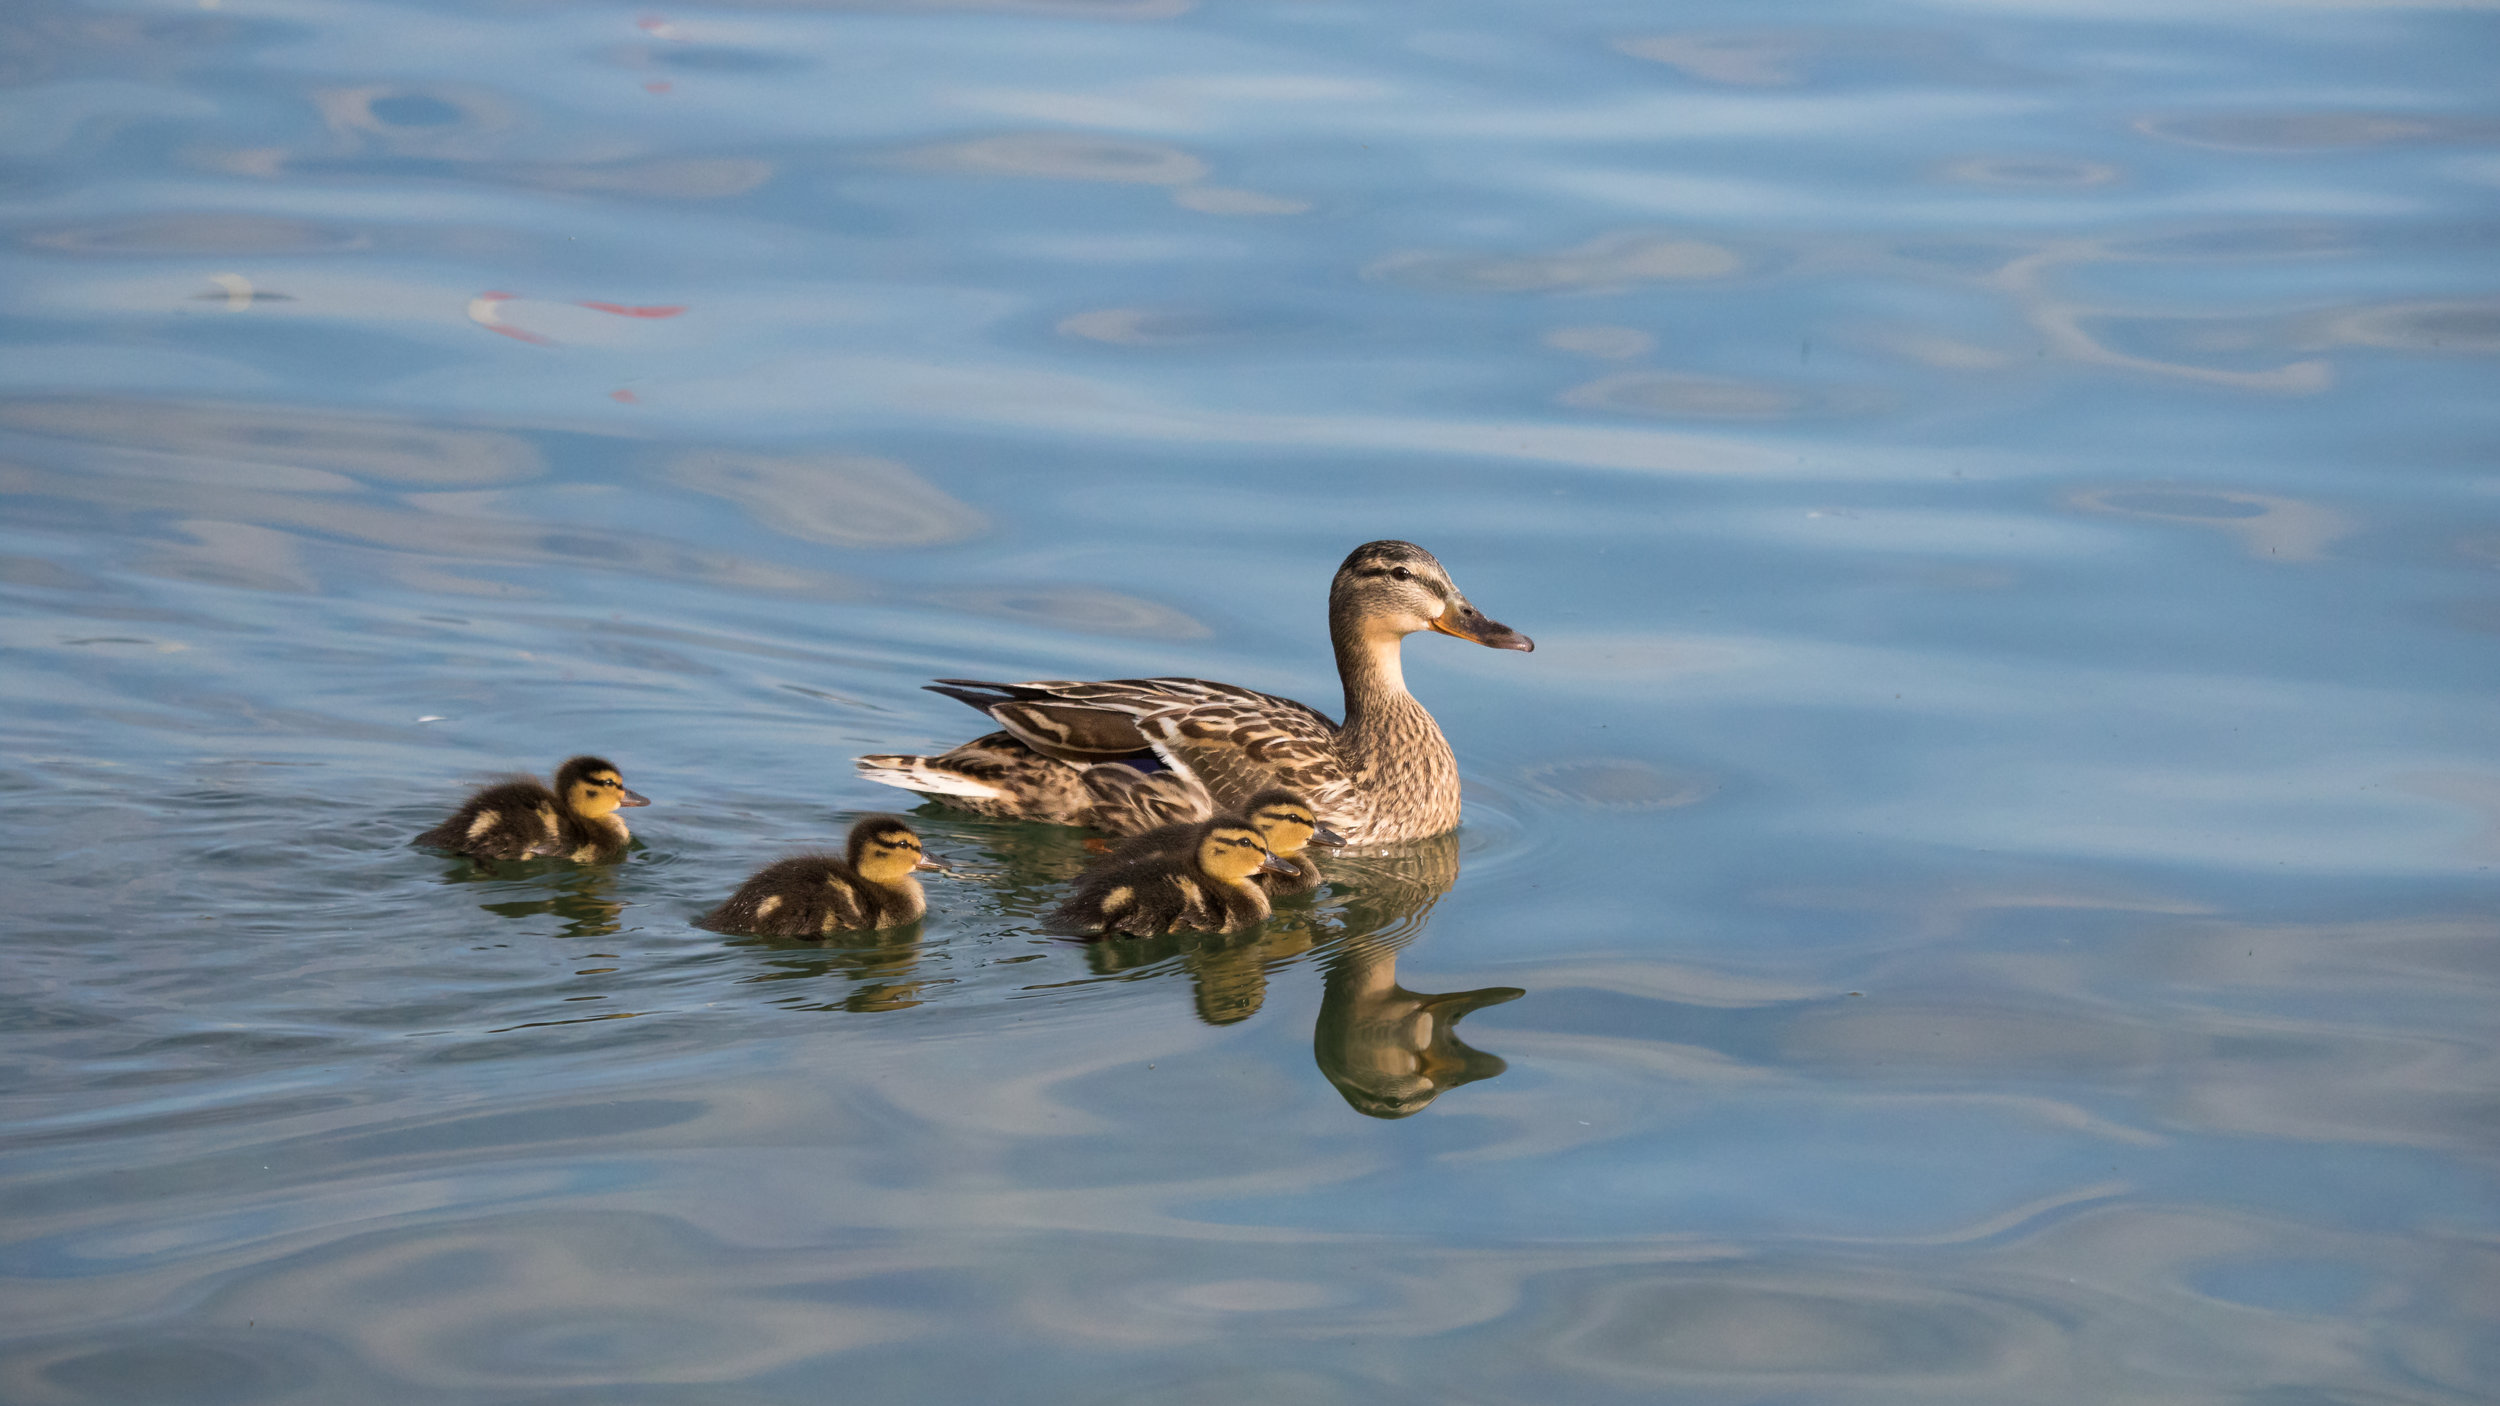 Female Mallard (Anas platyrhynchos) with chicks in Canton of Geneva, Switzerland. May 2015. Not baited. Not called in.